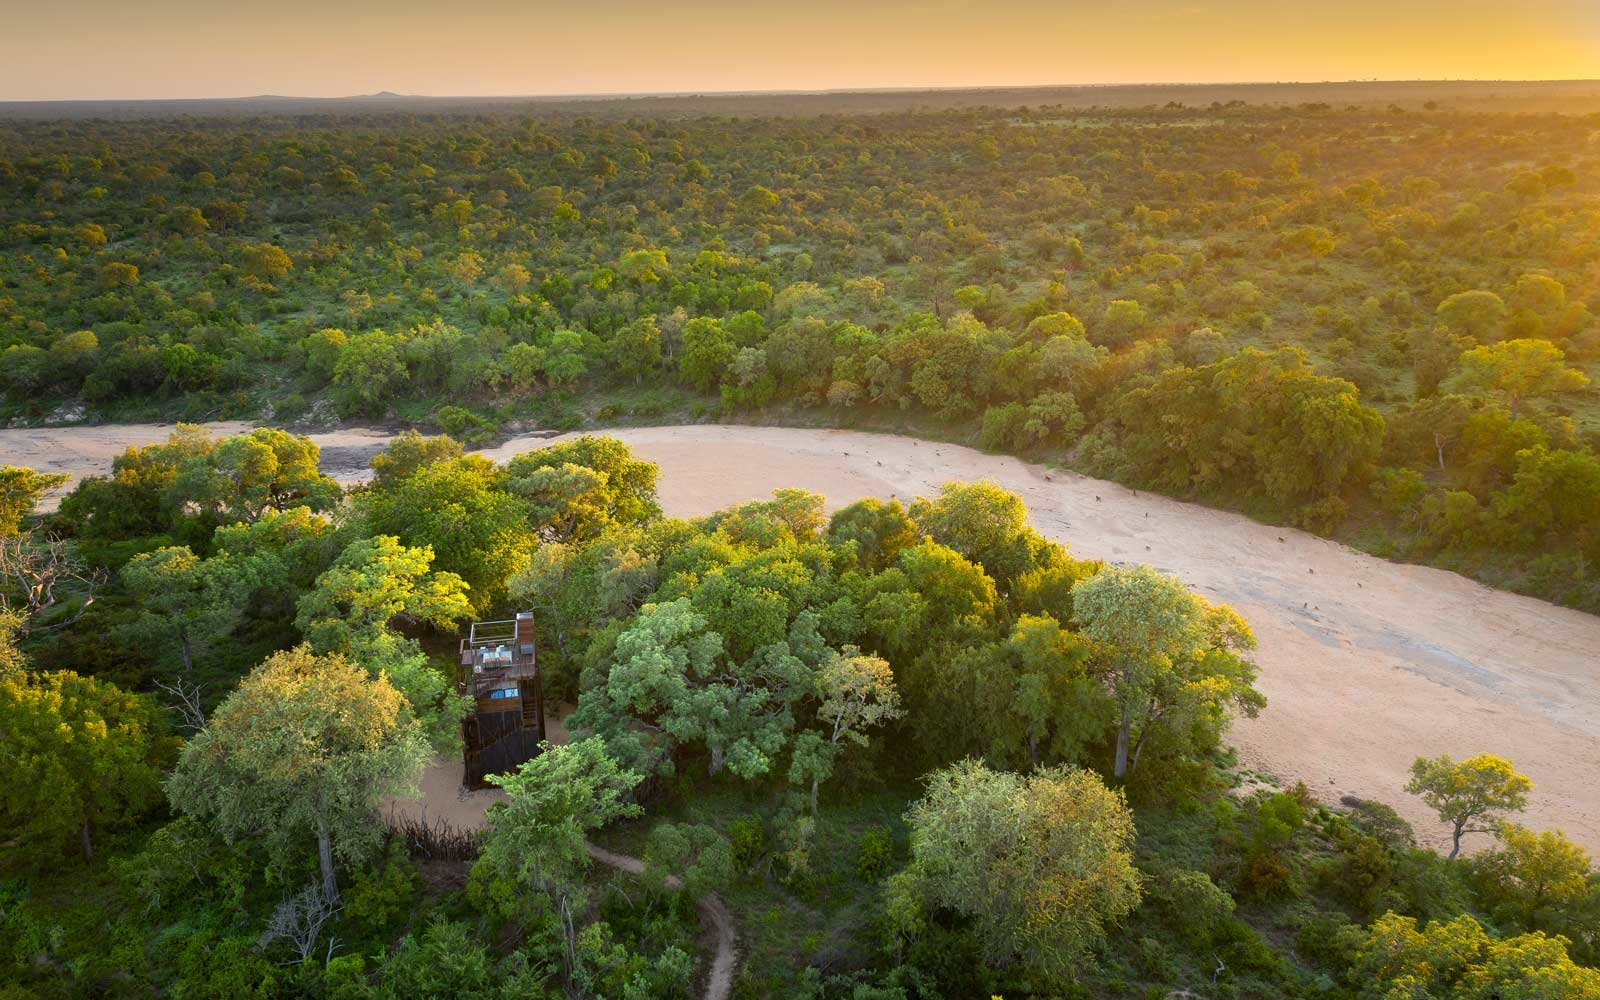 andBeyond Ngala Treehouse in South Africa